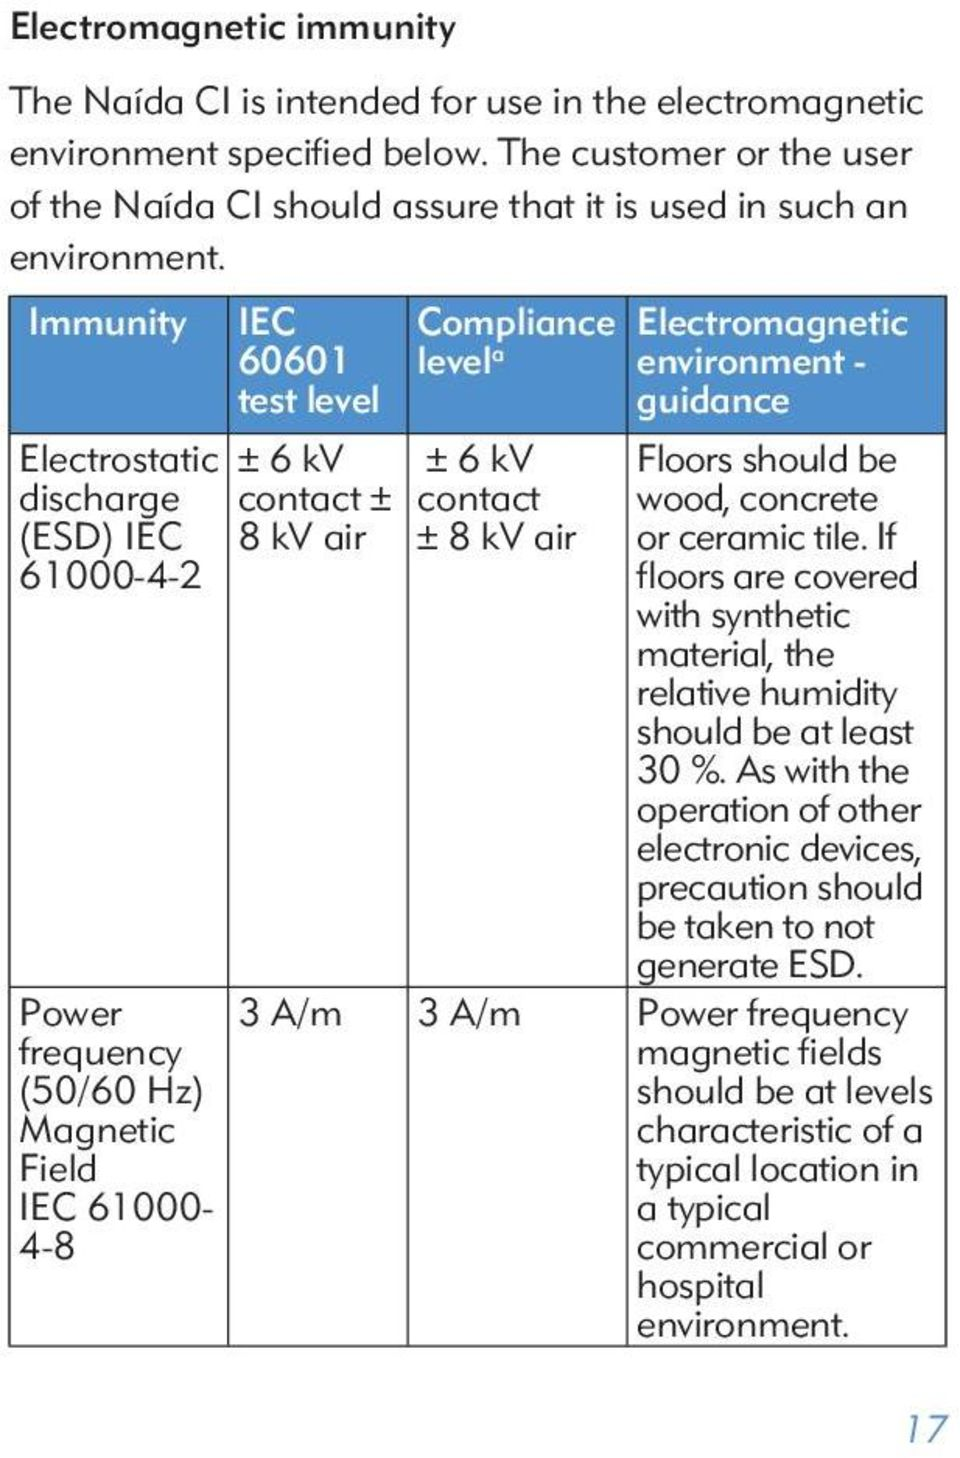 Immunity IEC Compliance Electromagnetic 60601 test level level a environment - guidance Electrostatic discharge (ESD) IEC 61000-4-2 Power frequency (50/60 Hz) Magnetic Field IEC 61000-4-8 ± 6 kv